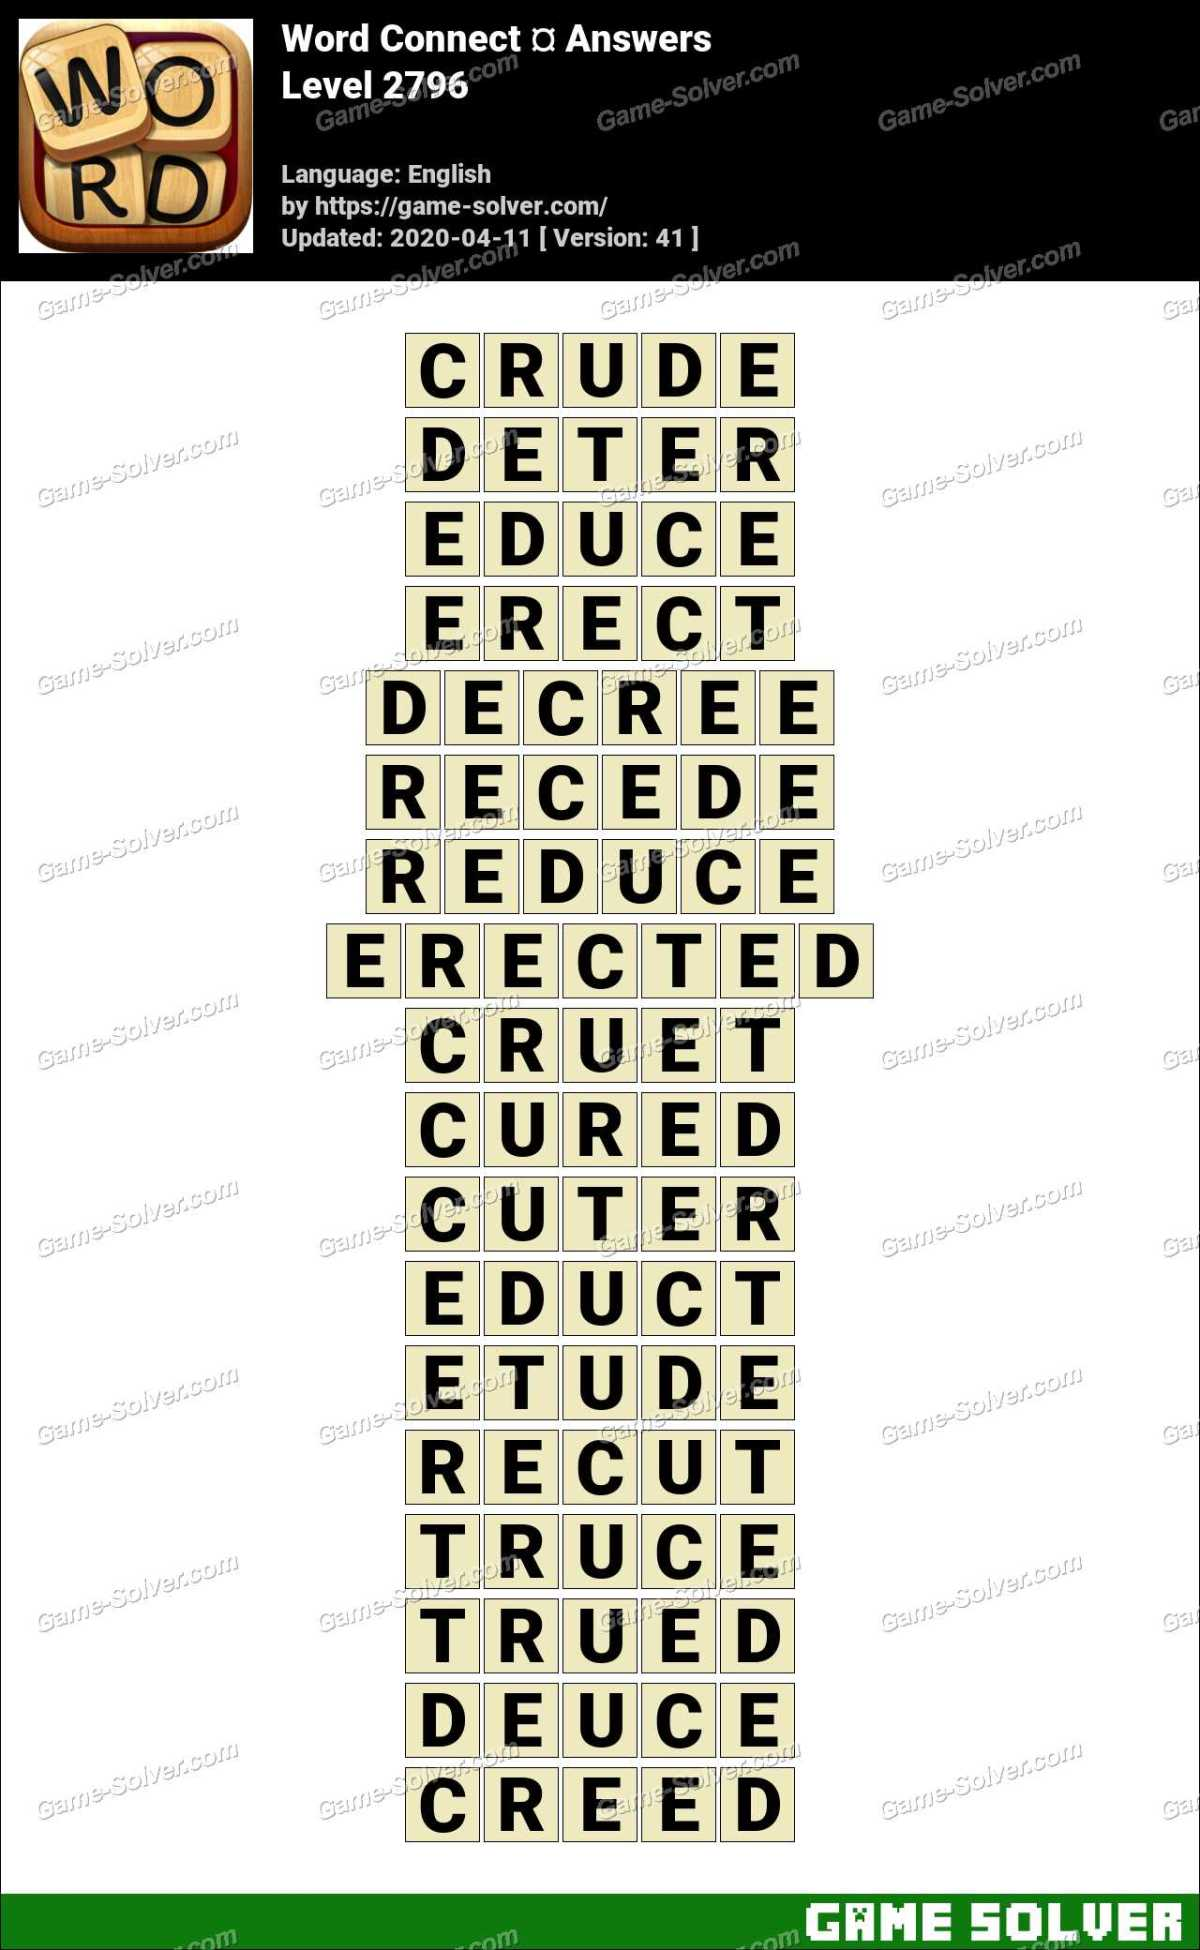 Word Connect Level 2796 Answers